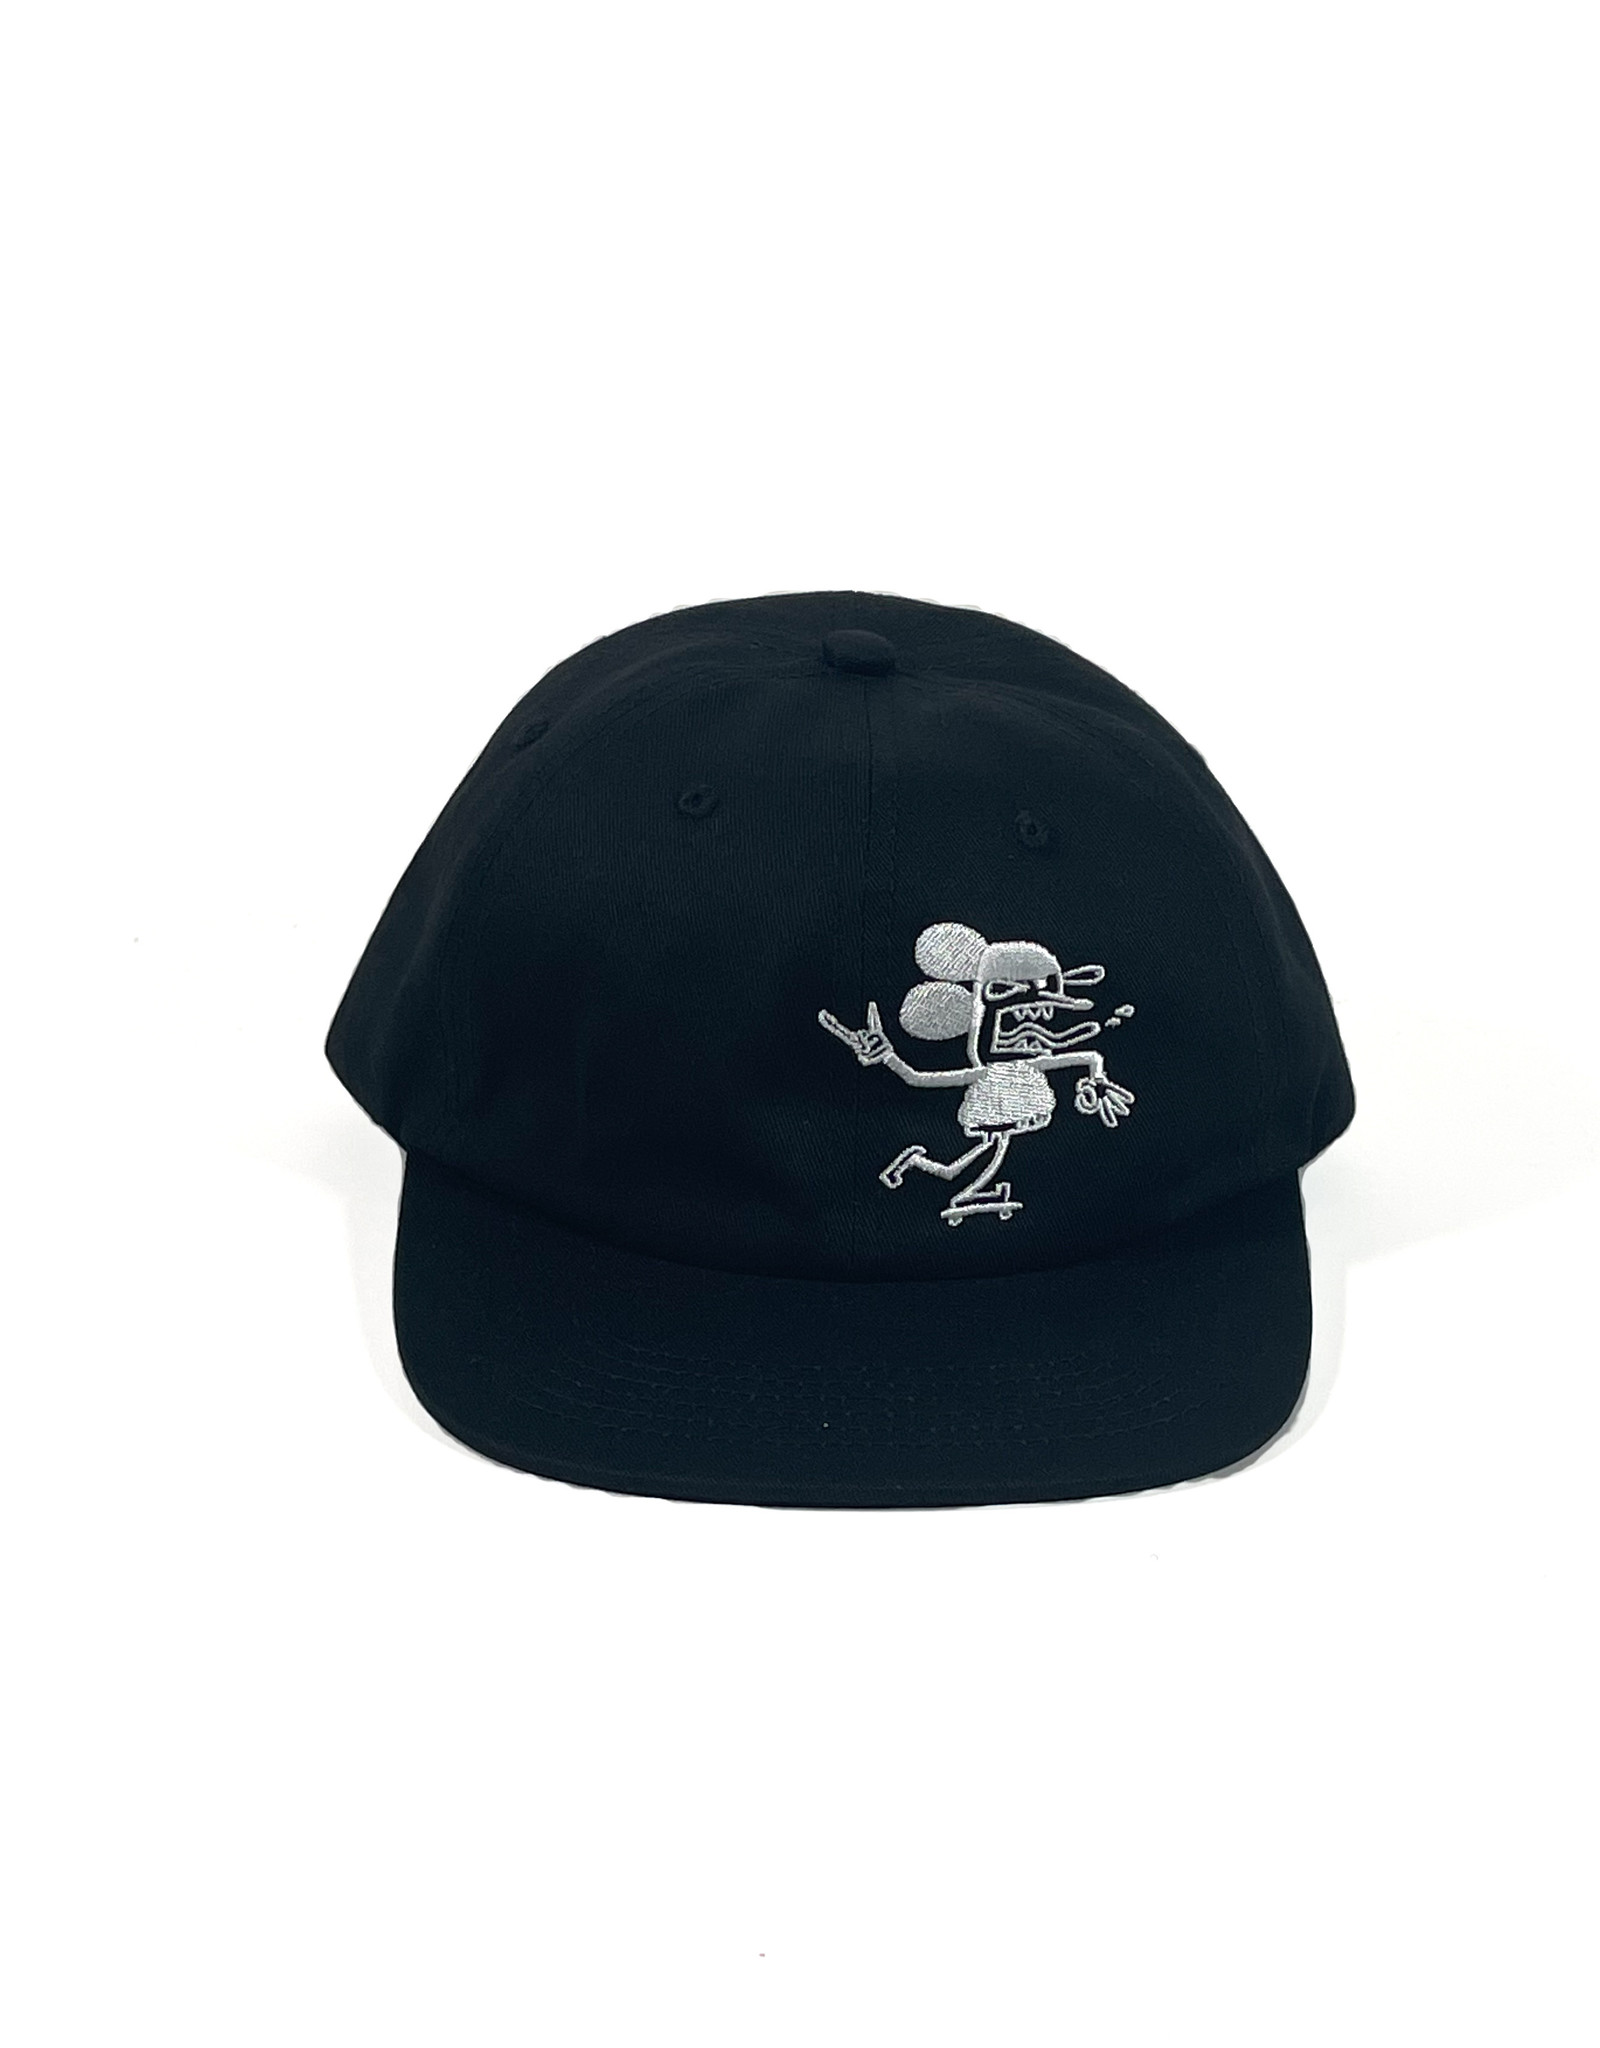 KINGSWELL KINGSWELL SKETCHY MOUSE HAT - BLACK